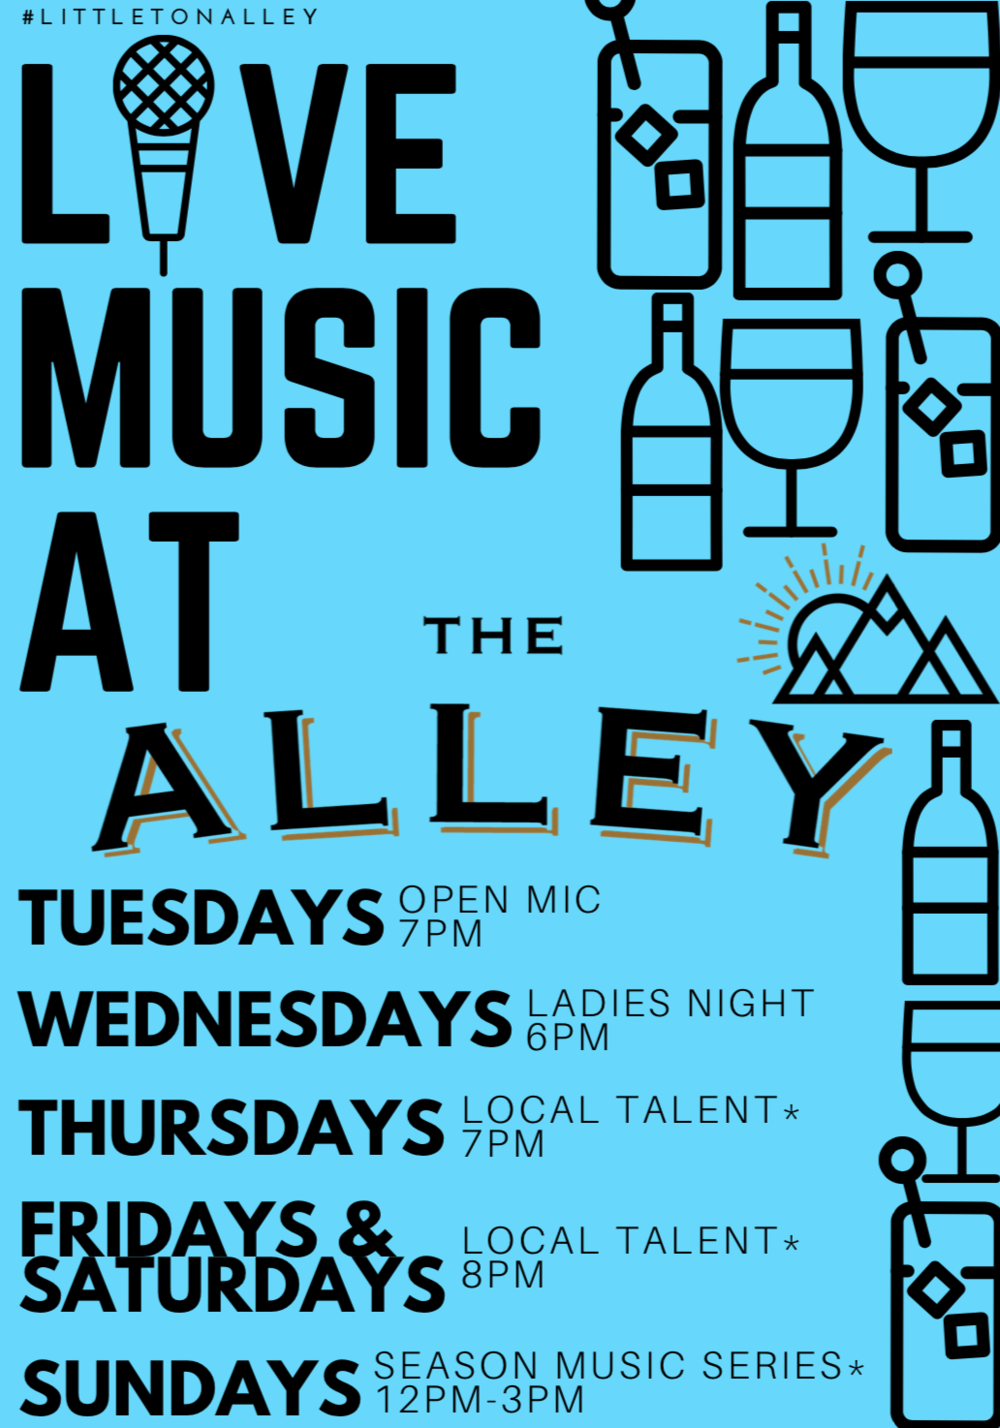 Thursday night live music at the alley